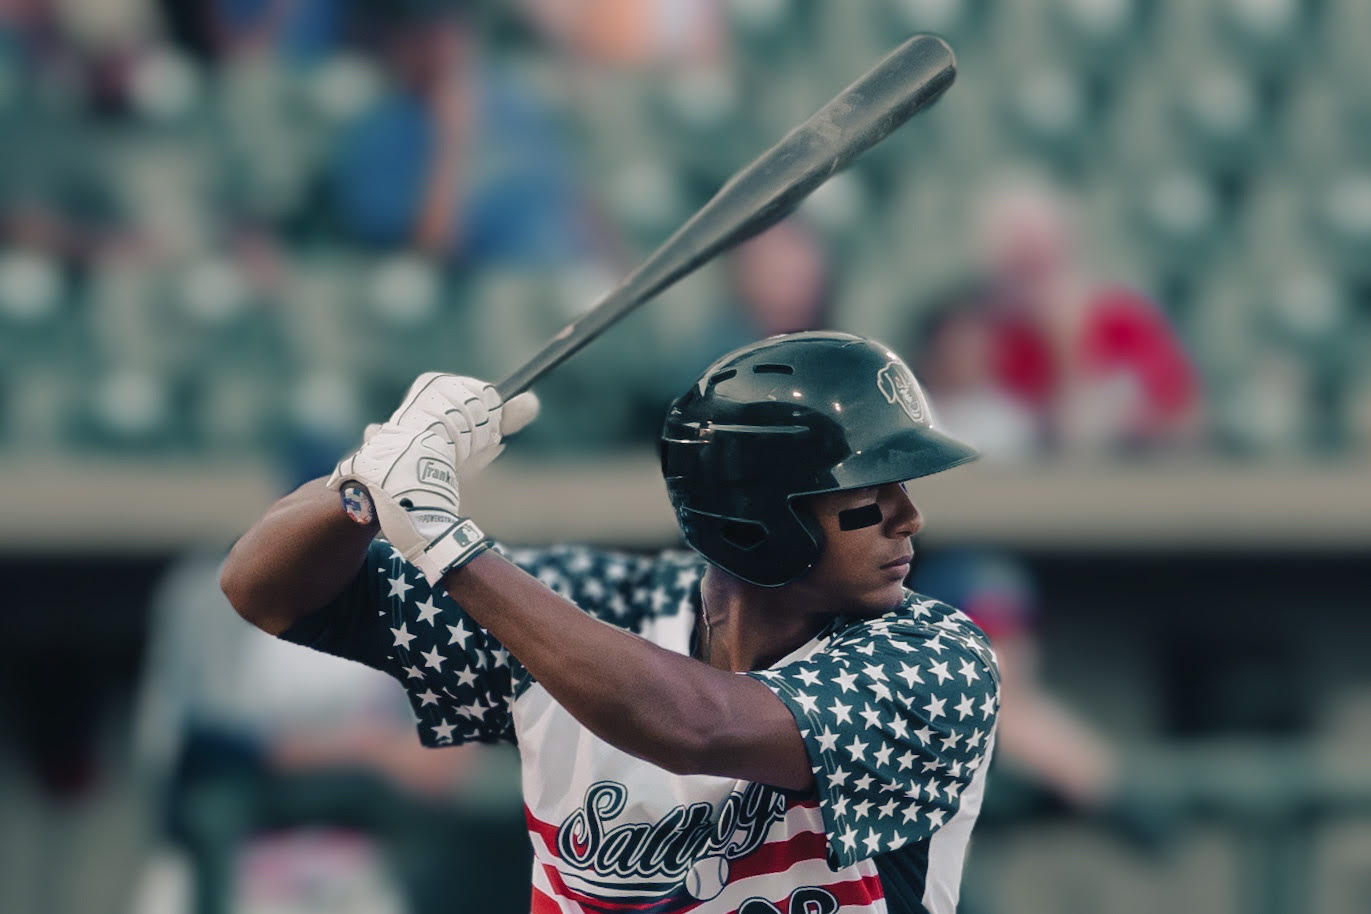 Saltdogs Hold Off RedHawks to Even Series